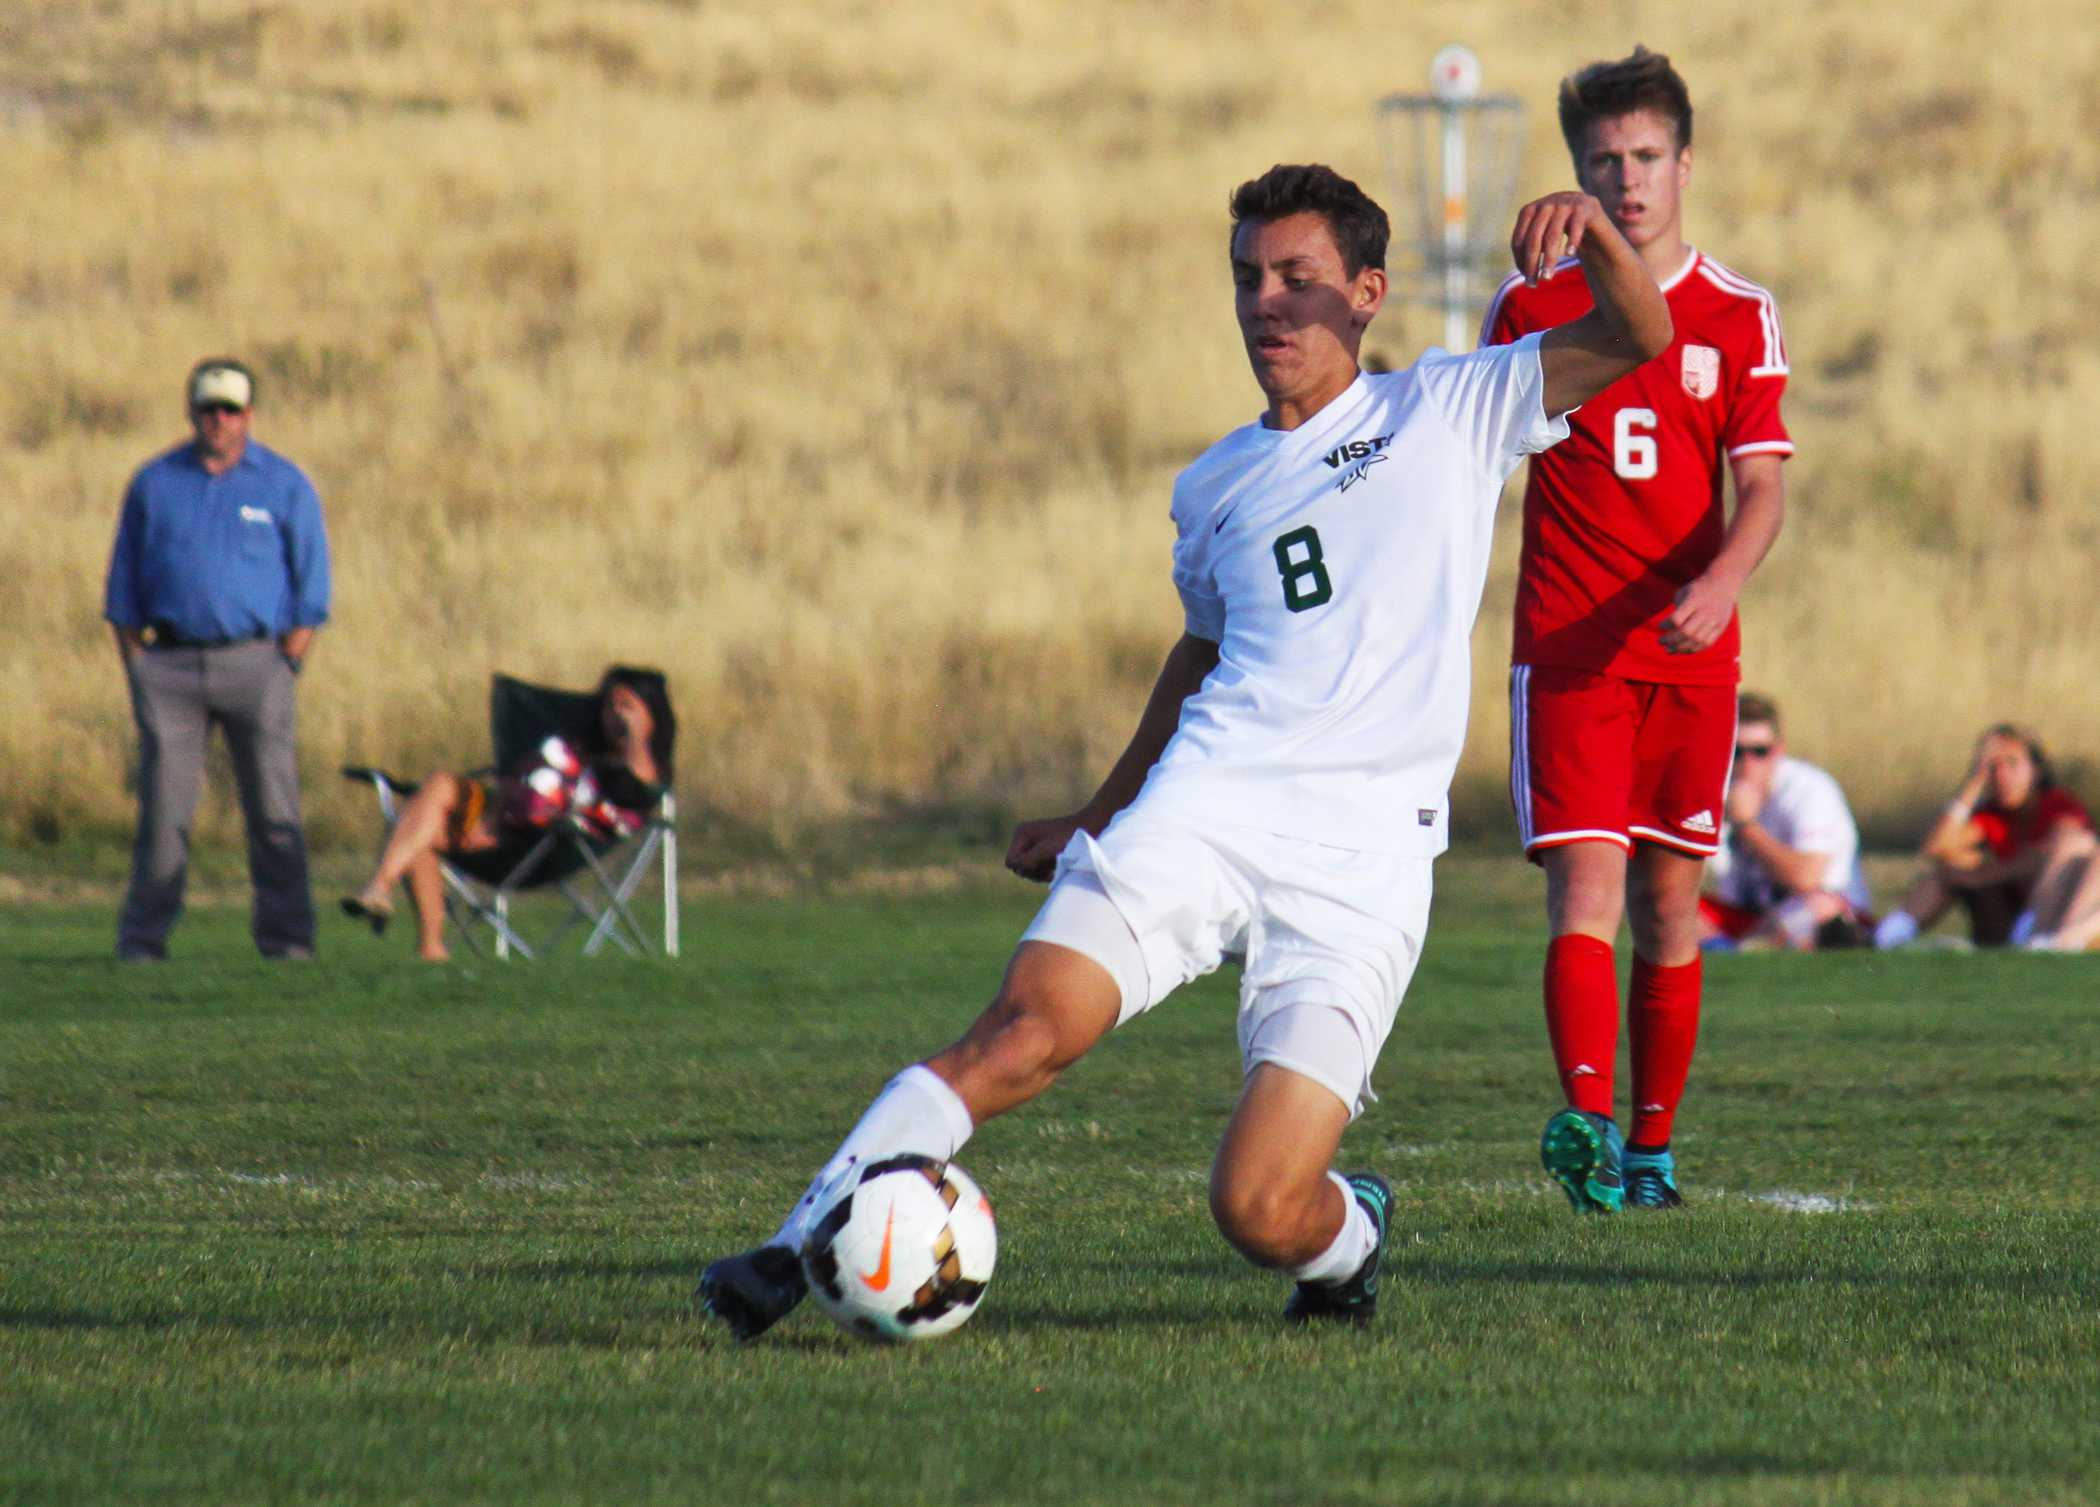 PHOTOS: Men's Soccer vs. Regis Jesuit